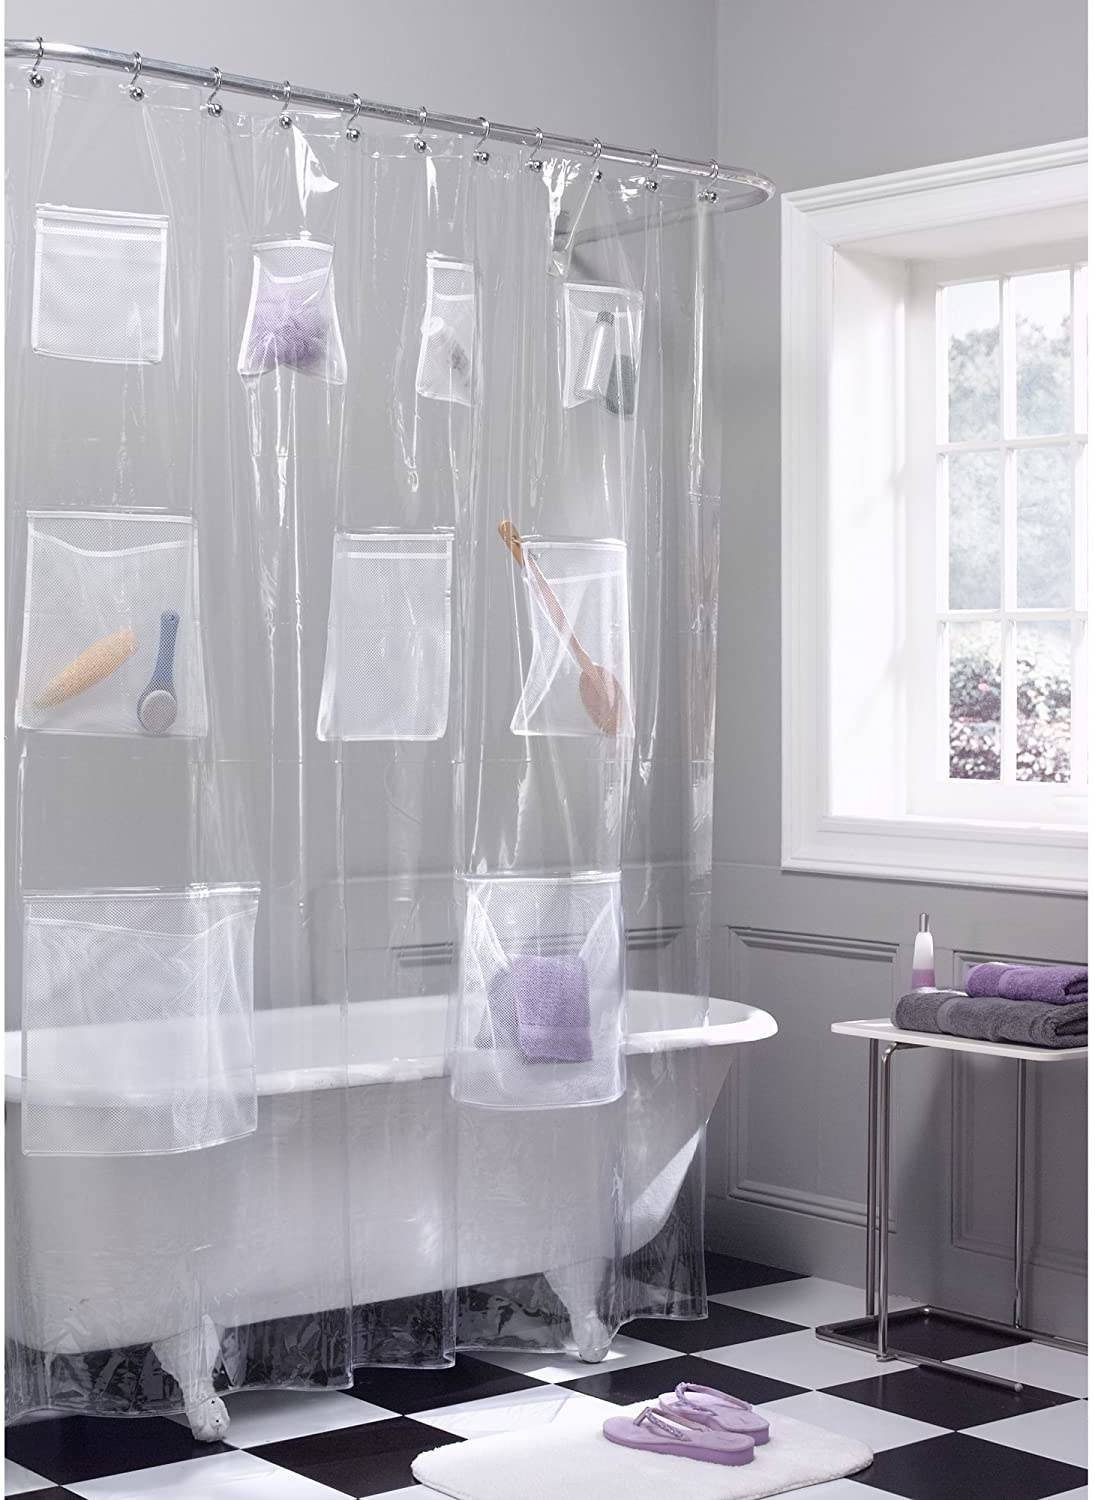 The mesh pocket shower curtain hanging around a claw foot tub